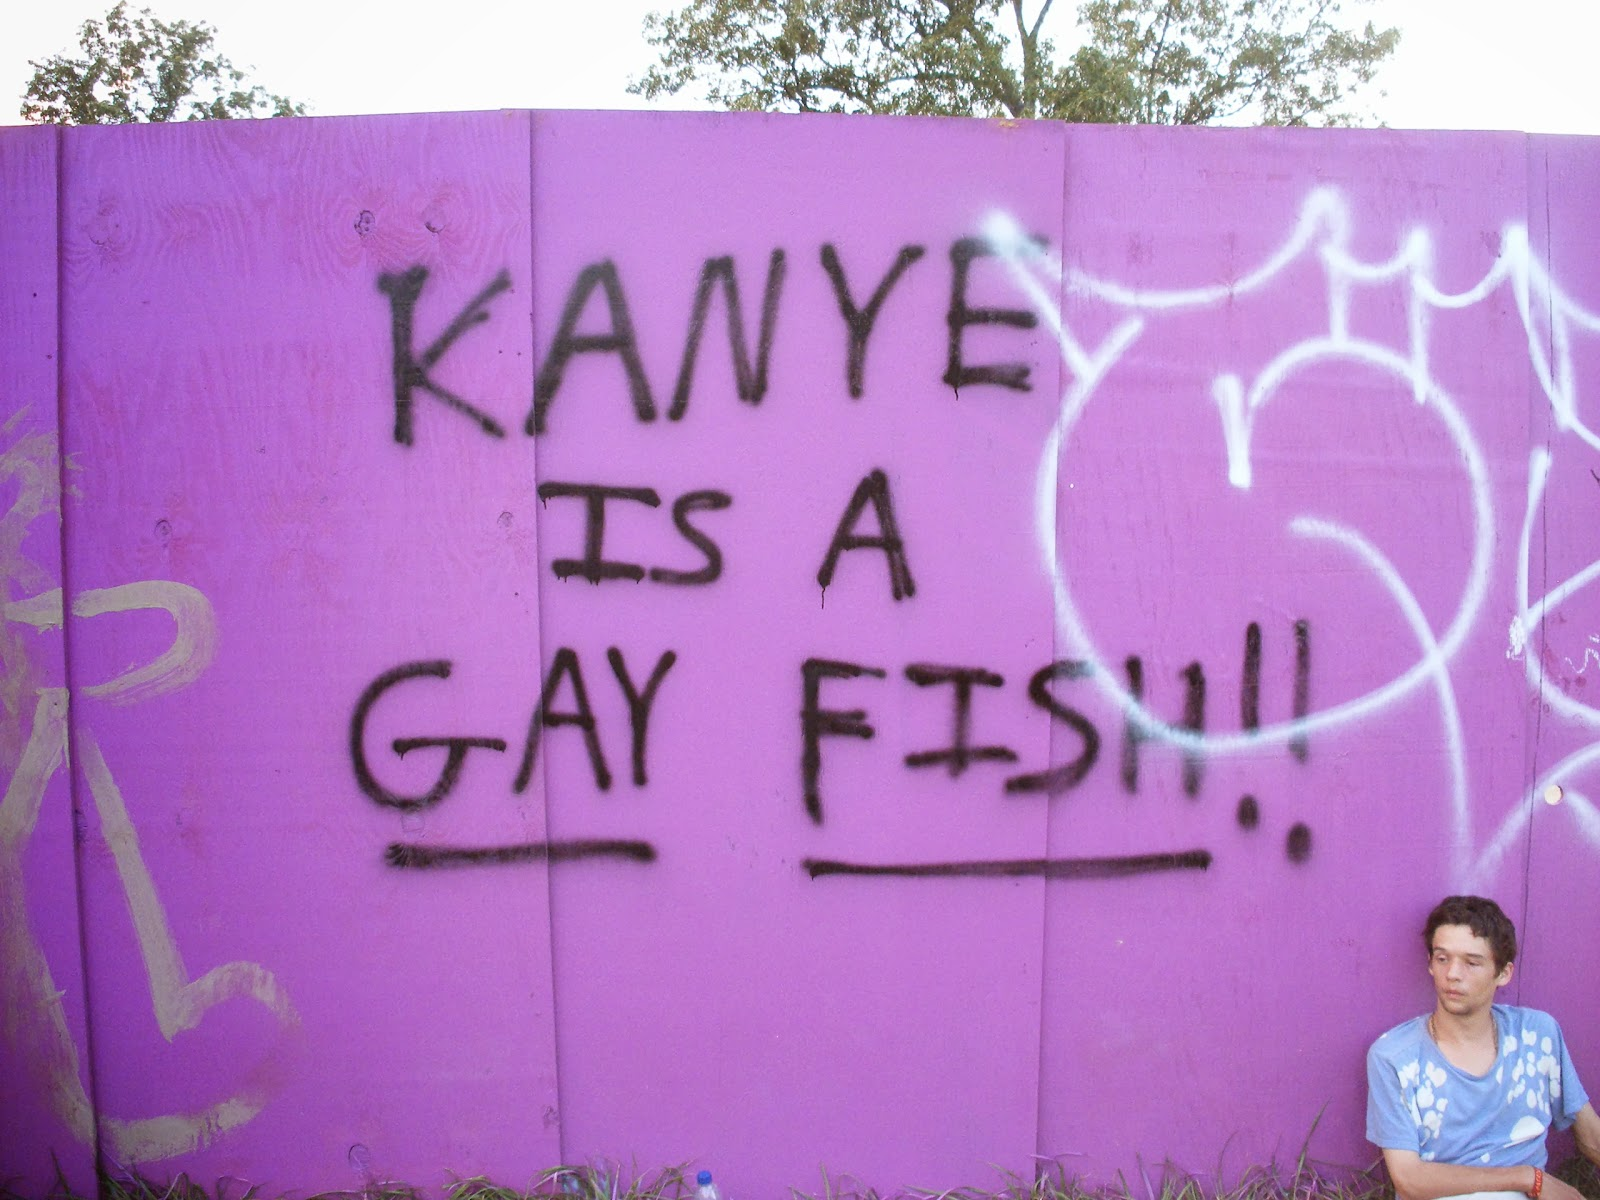 Kanye is a gay fish!